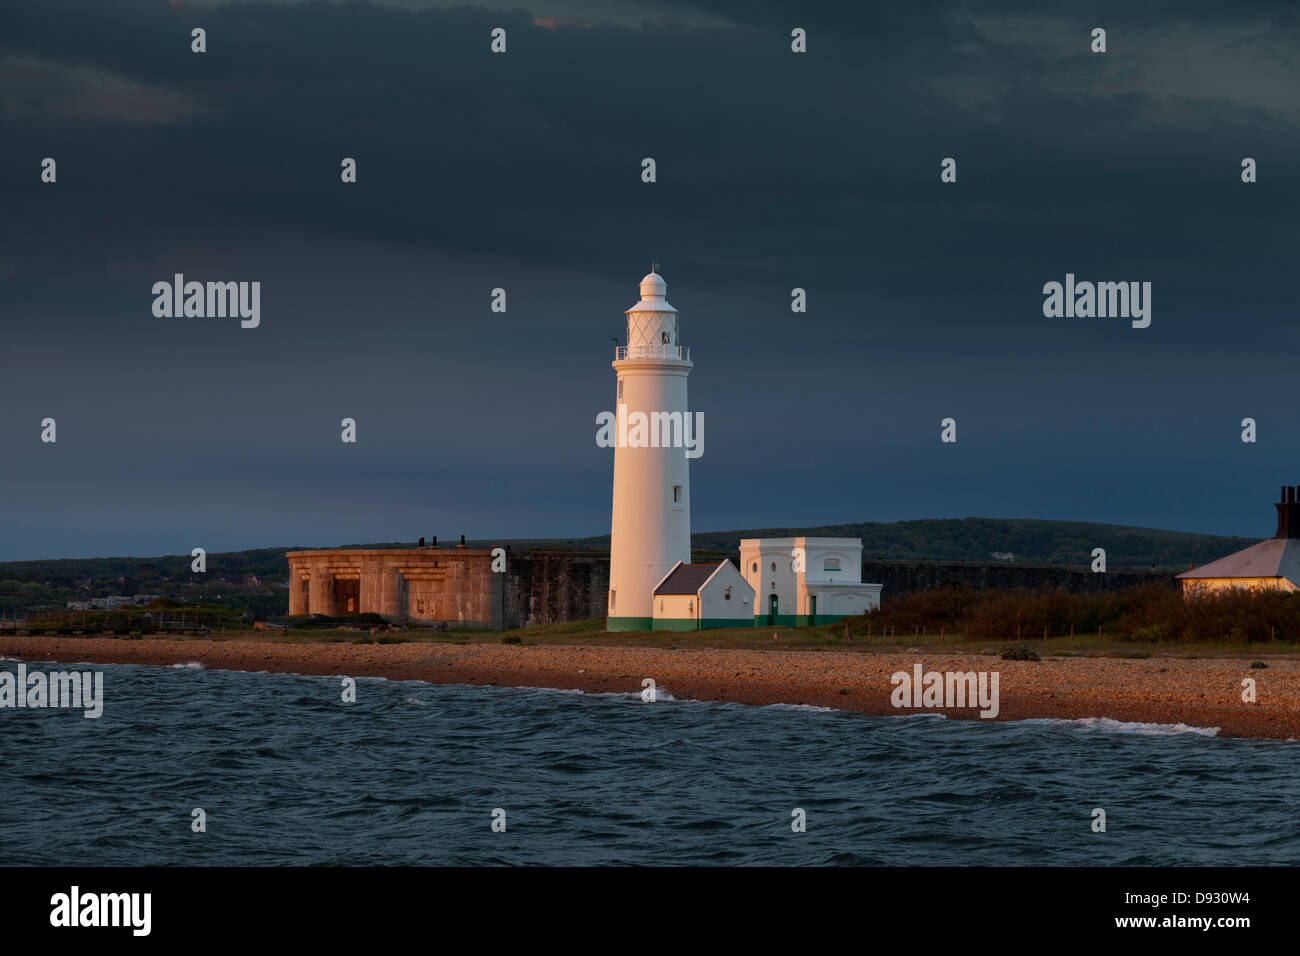 Hurst lighthouse castle maritime fortifications at sun rise shingle spit Keyhaven Solent defense warning safety - Stock Image